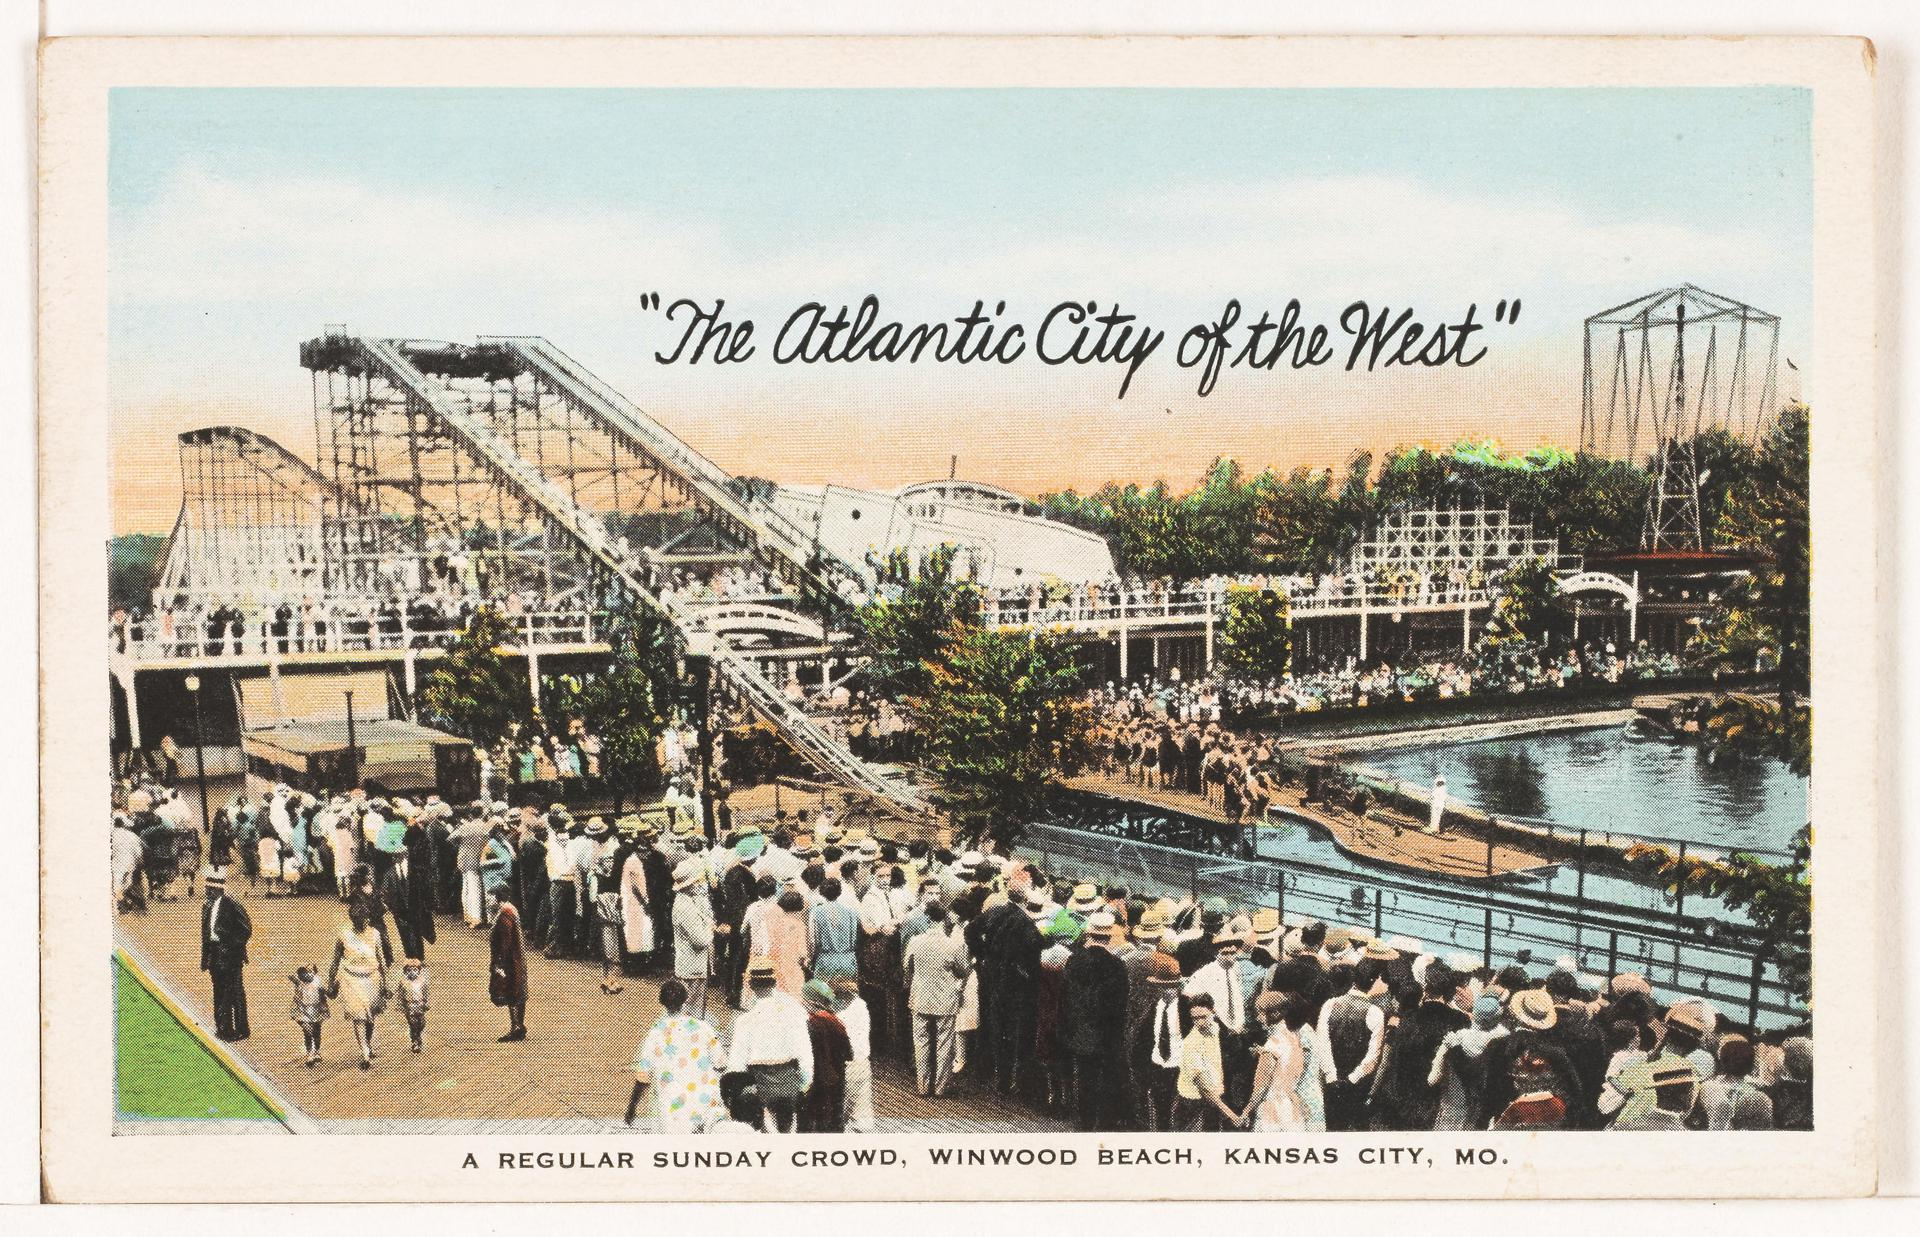 A snapshot of the lake at Winnwood Beach with views of the rides and and a Sunday crowd visiting.